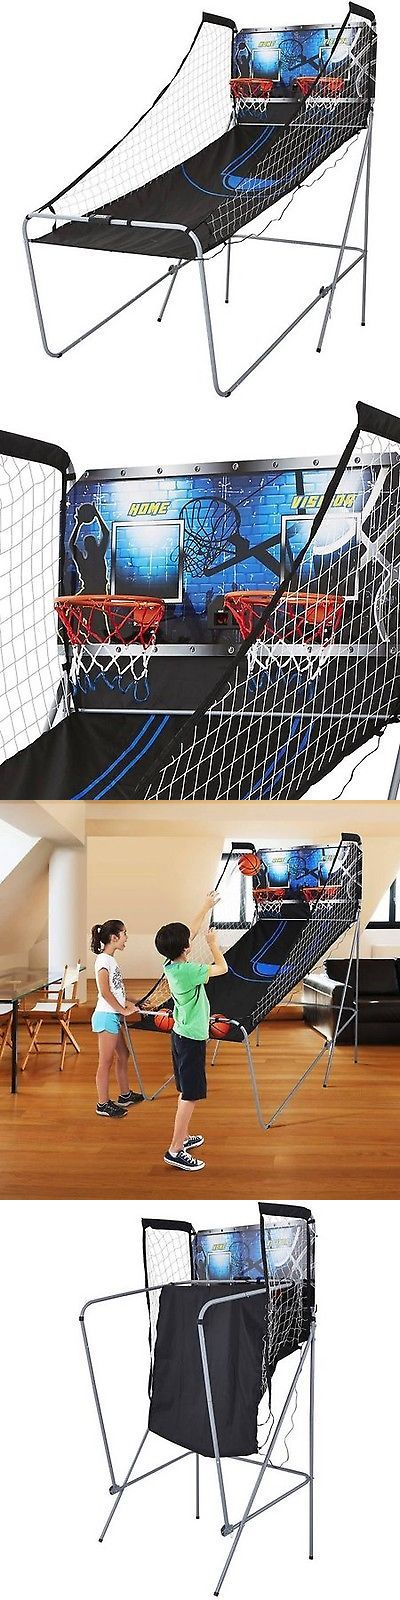 Other Indoor Games 36278: Md Sports 2-Player Arcade Basketball Game With 8 Game Options -> BUY IT NOW ONLY: $55.99 on eBay!